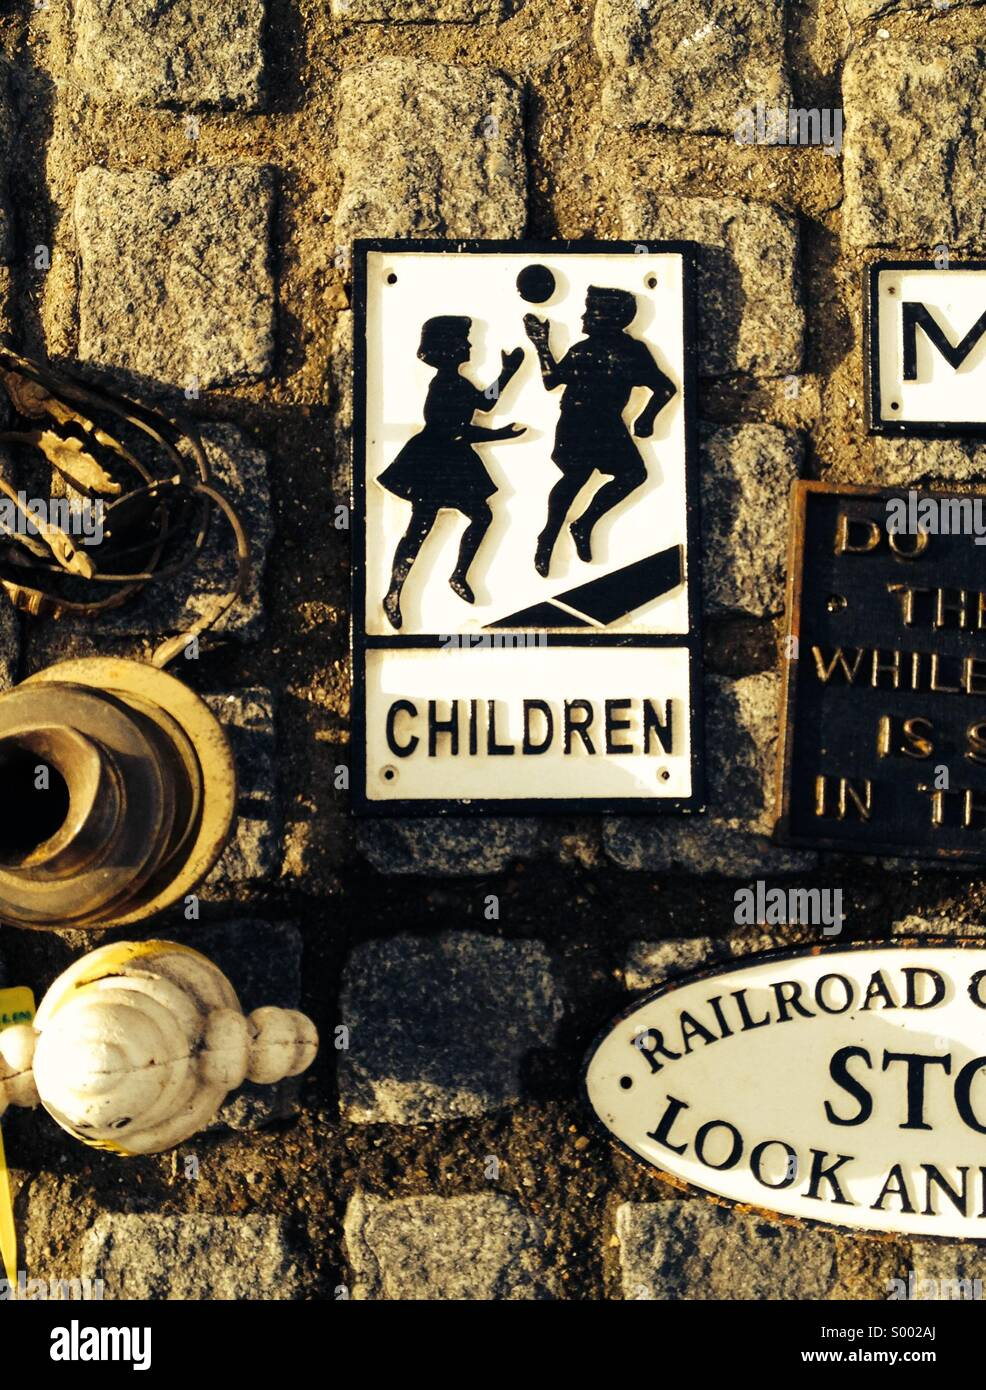 Playing children, vintage road sign - Stock Image